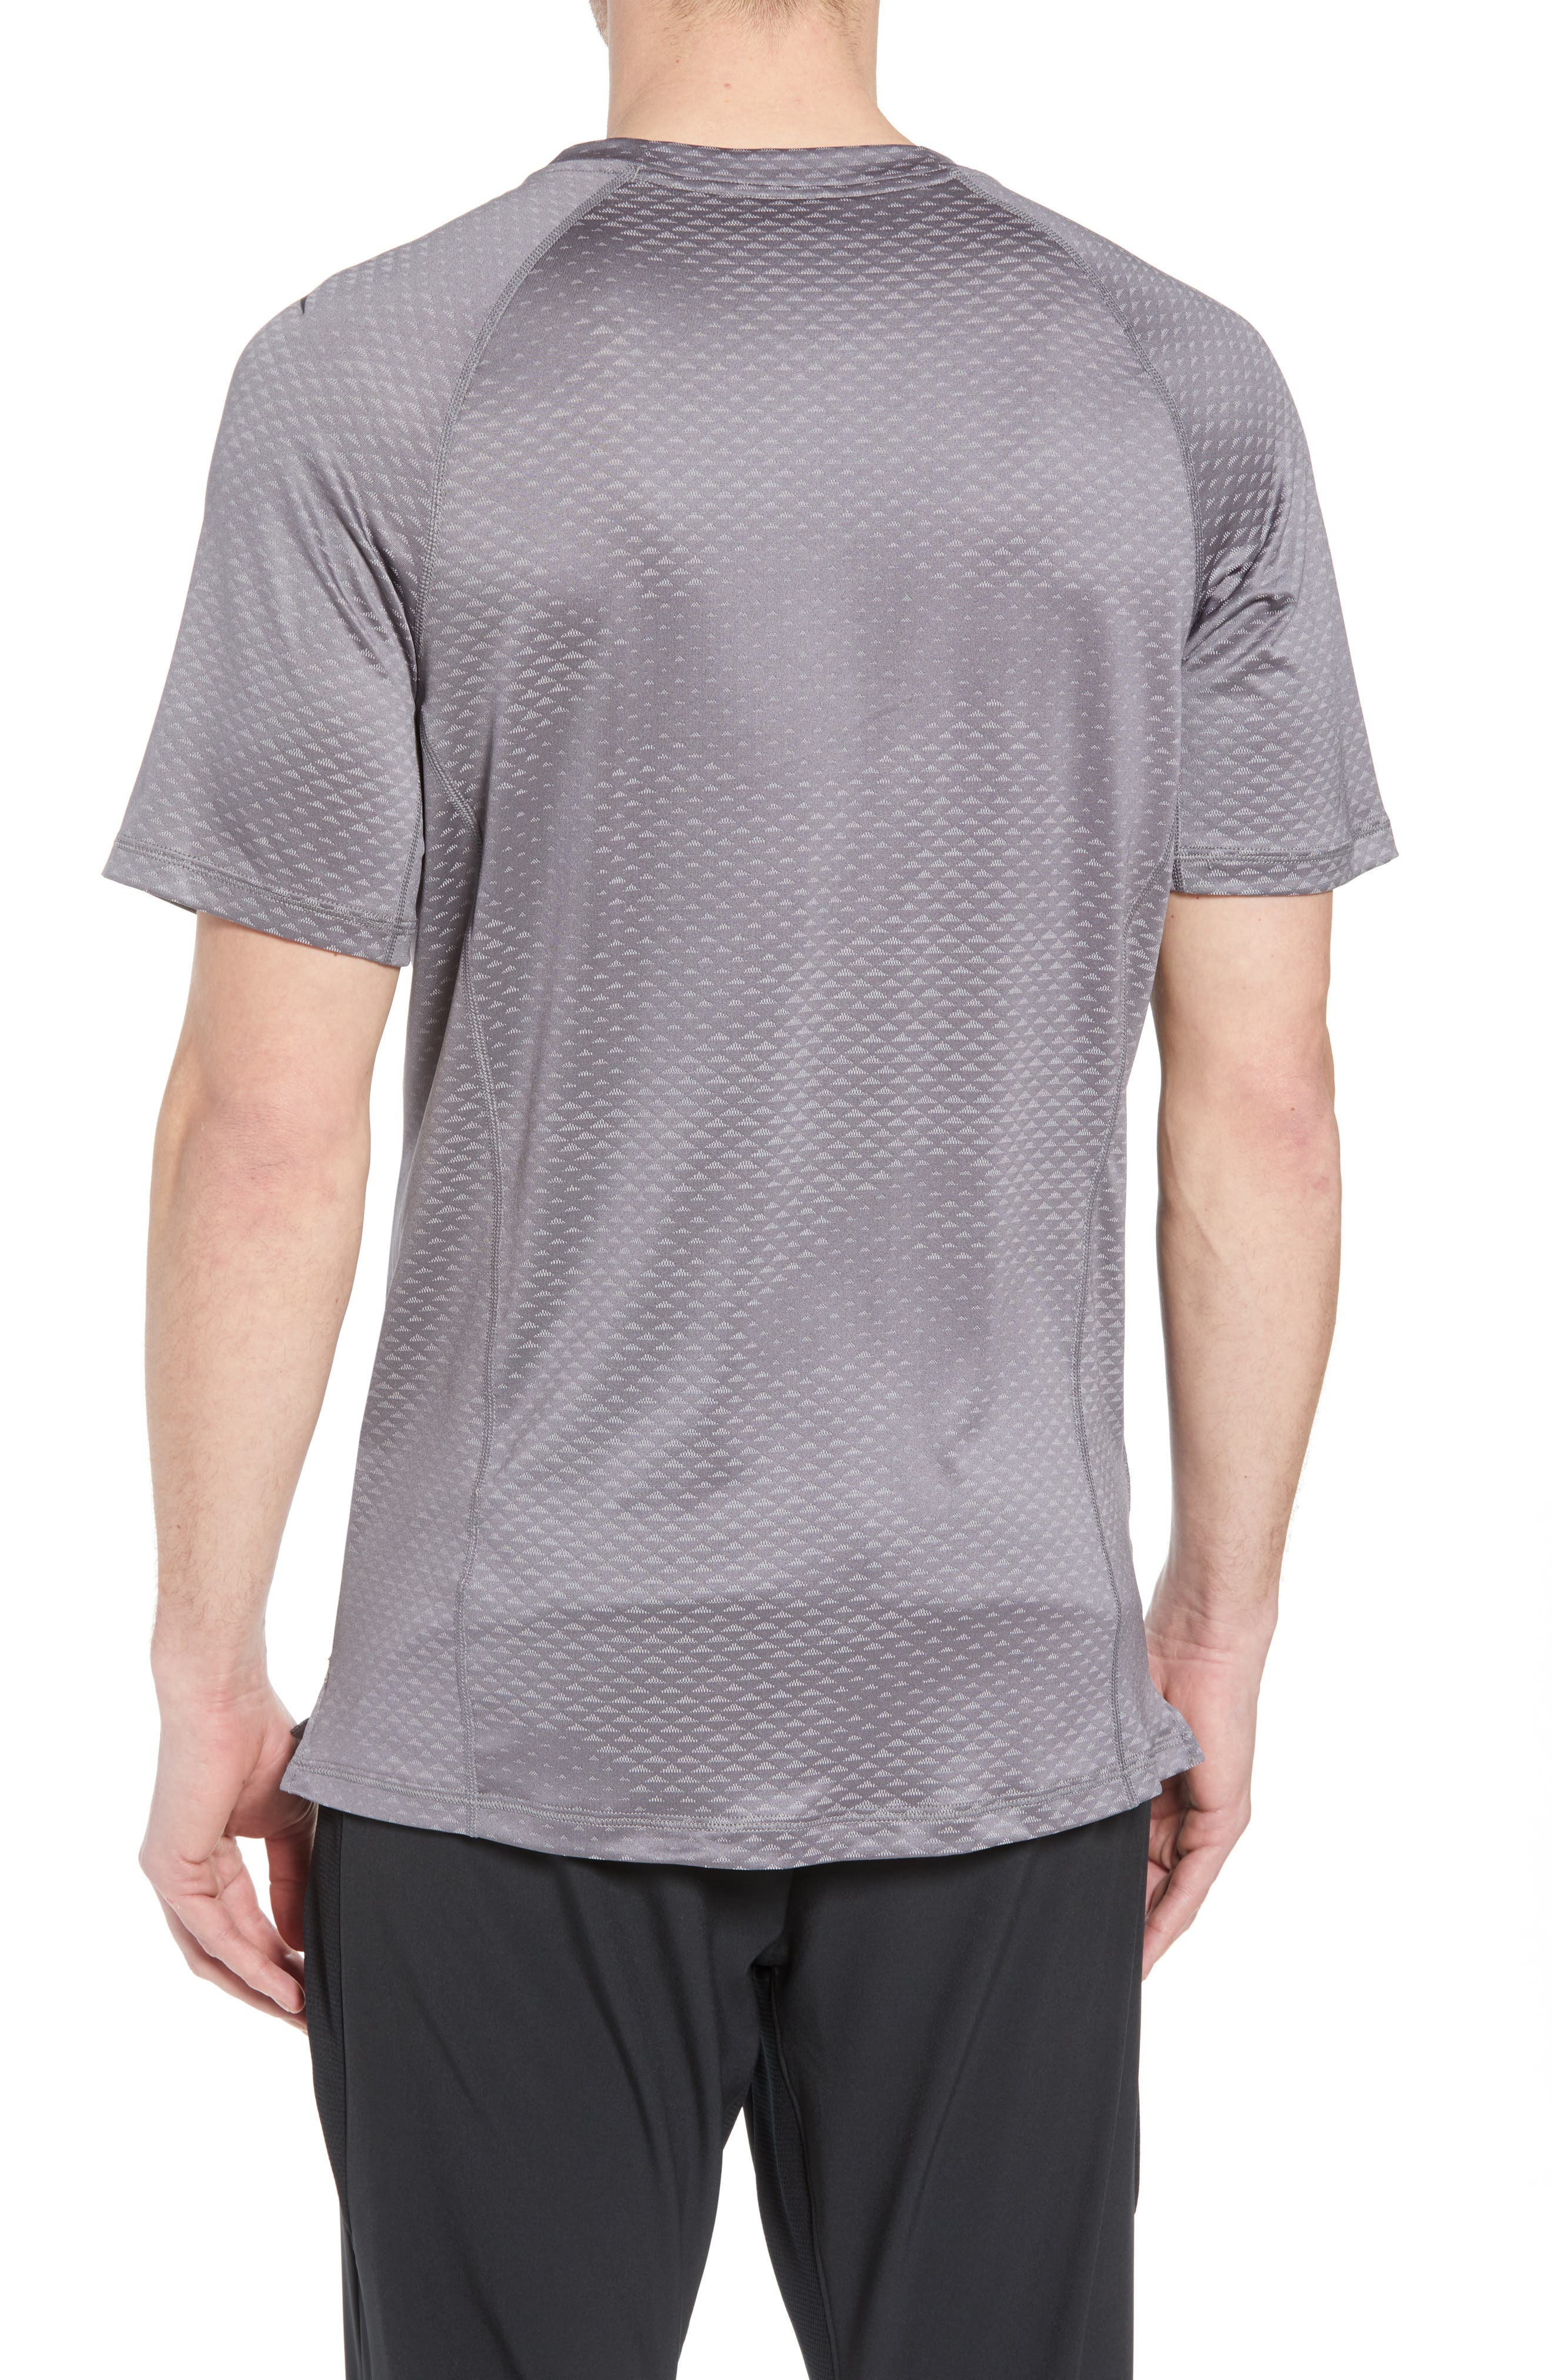 Pro HyperCool Fitted Crewneck T-Shirt,                             Alternate thumbnail 2, color,                             Atmosphere Grey/ Black